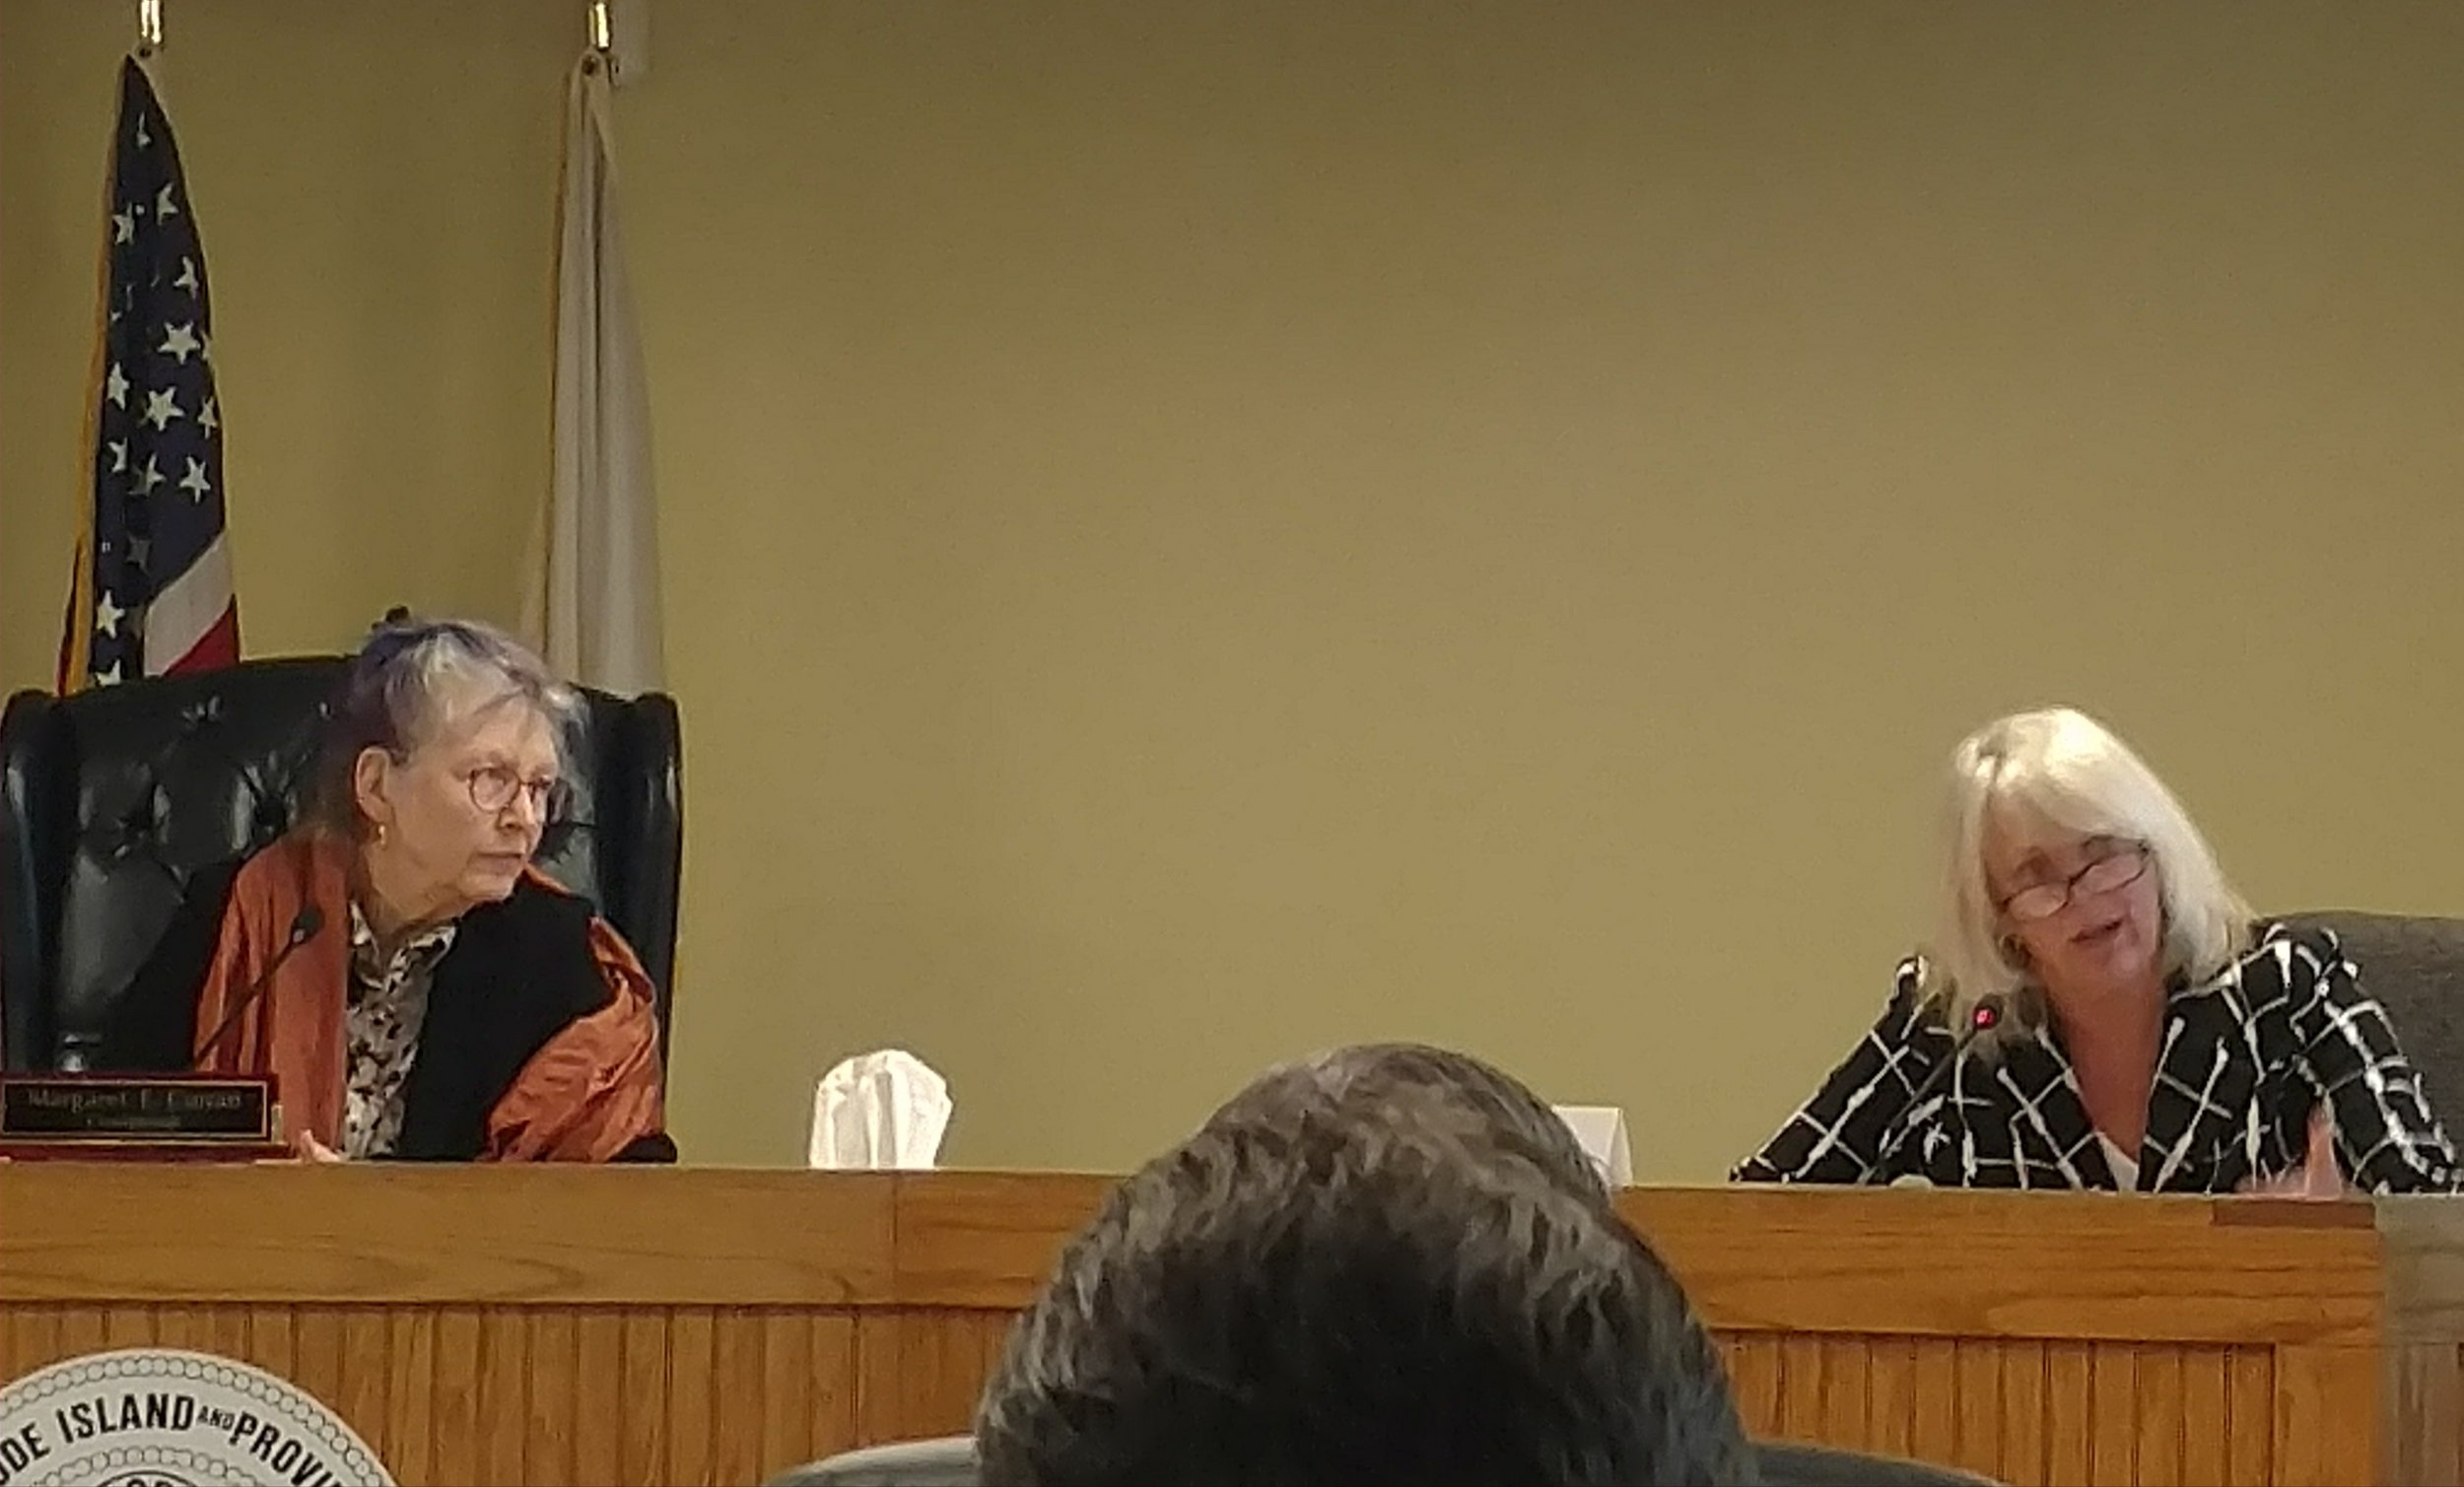 Energy Facility Siting Board members Margaret Curran, left, and Janet Coit agreed to give Charlestown a role in the fate of the proposed Clear River Energy Center. (Tim Faulkner/ecoRI News)